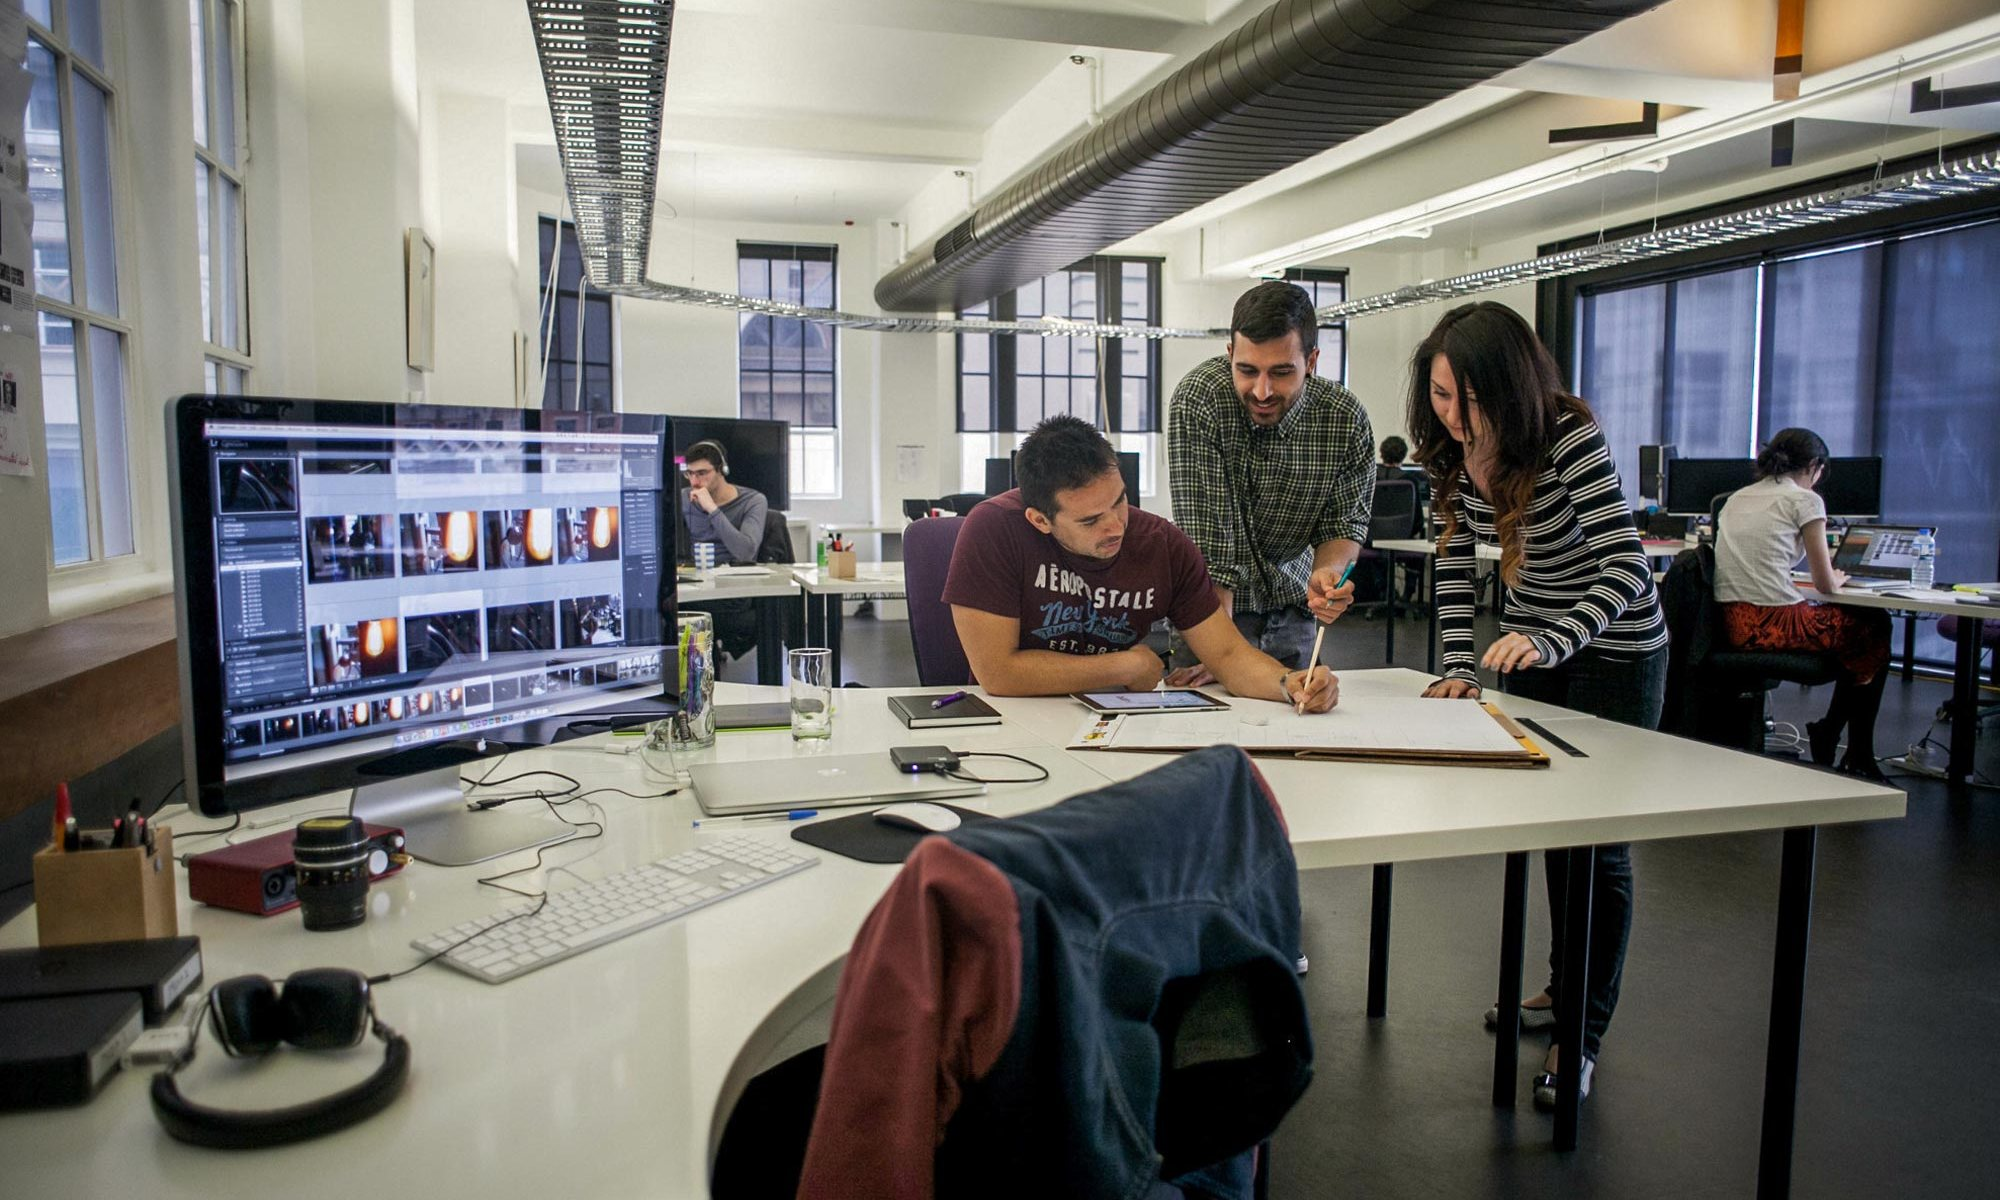 A team of professionals discussing design of a website